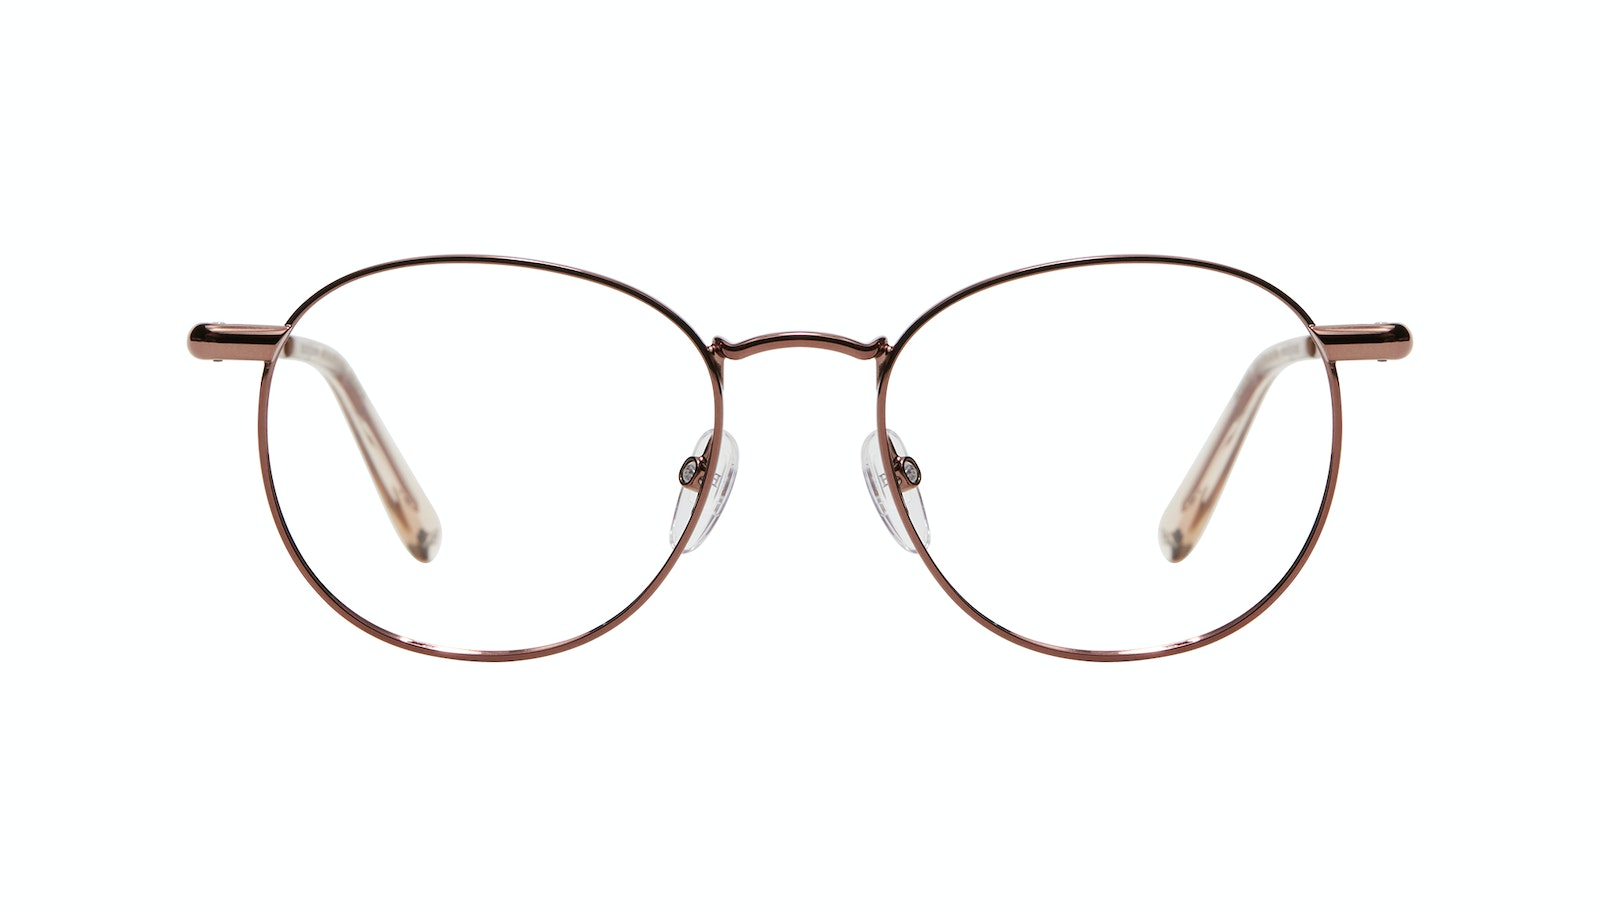 Affordable Fashion Glasses Round Eyeglasses Men Women Divine M Copper